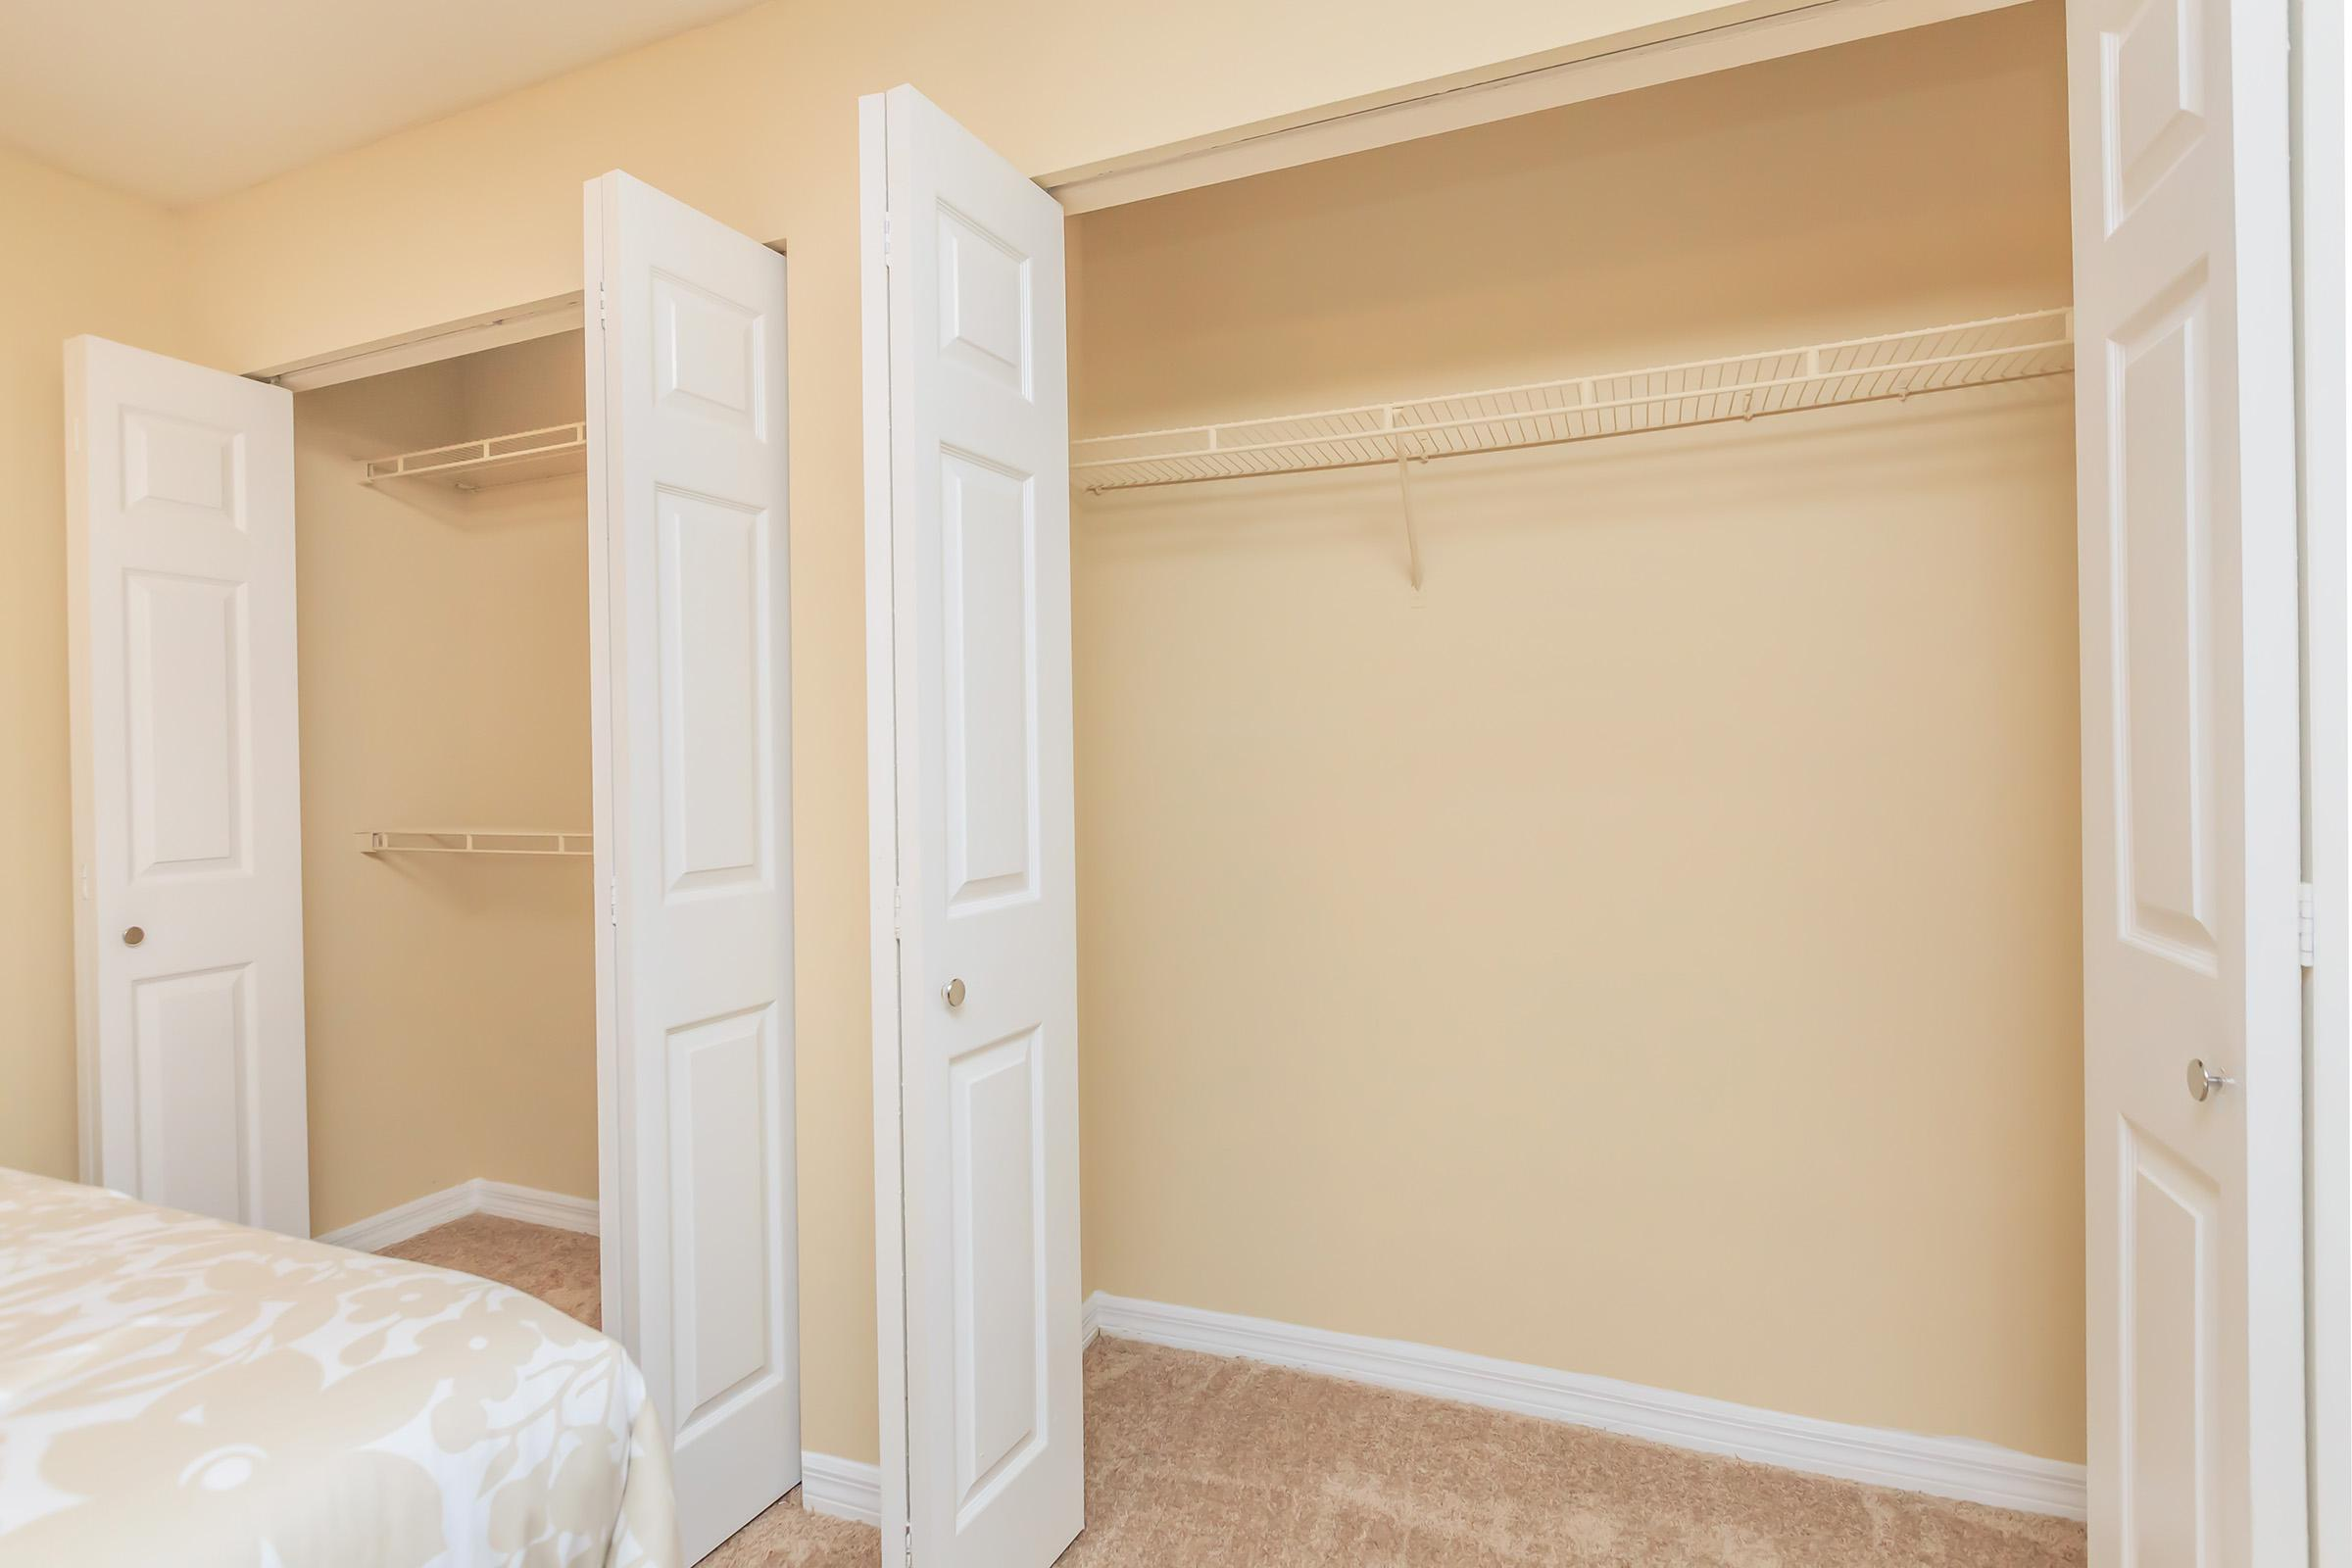 a bedroom with a bed a dresser and a door